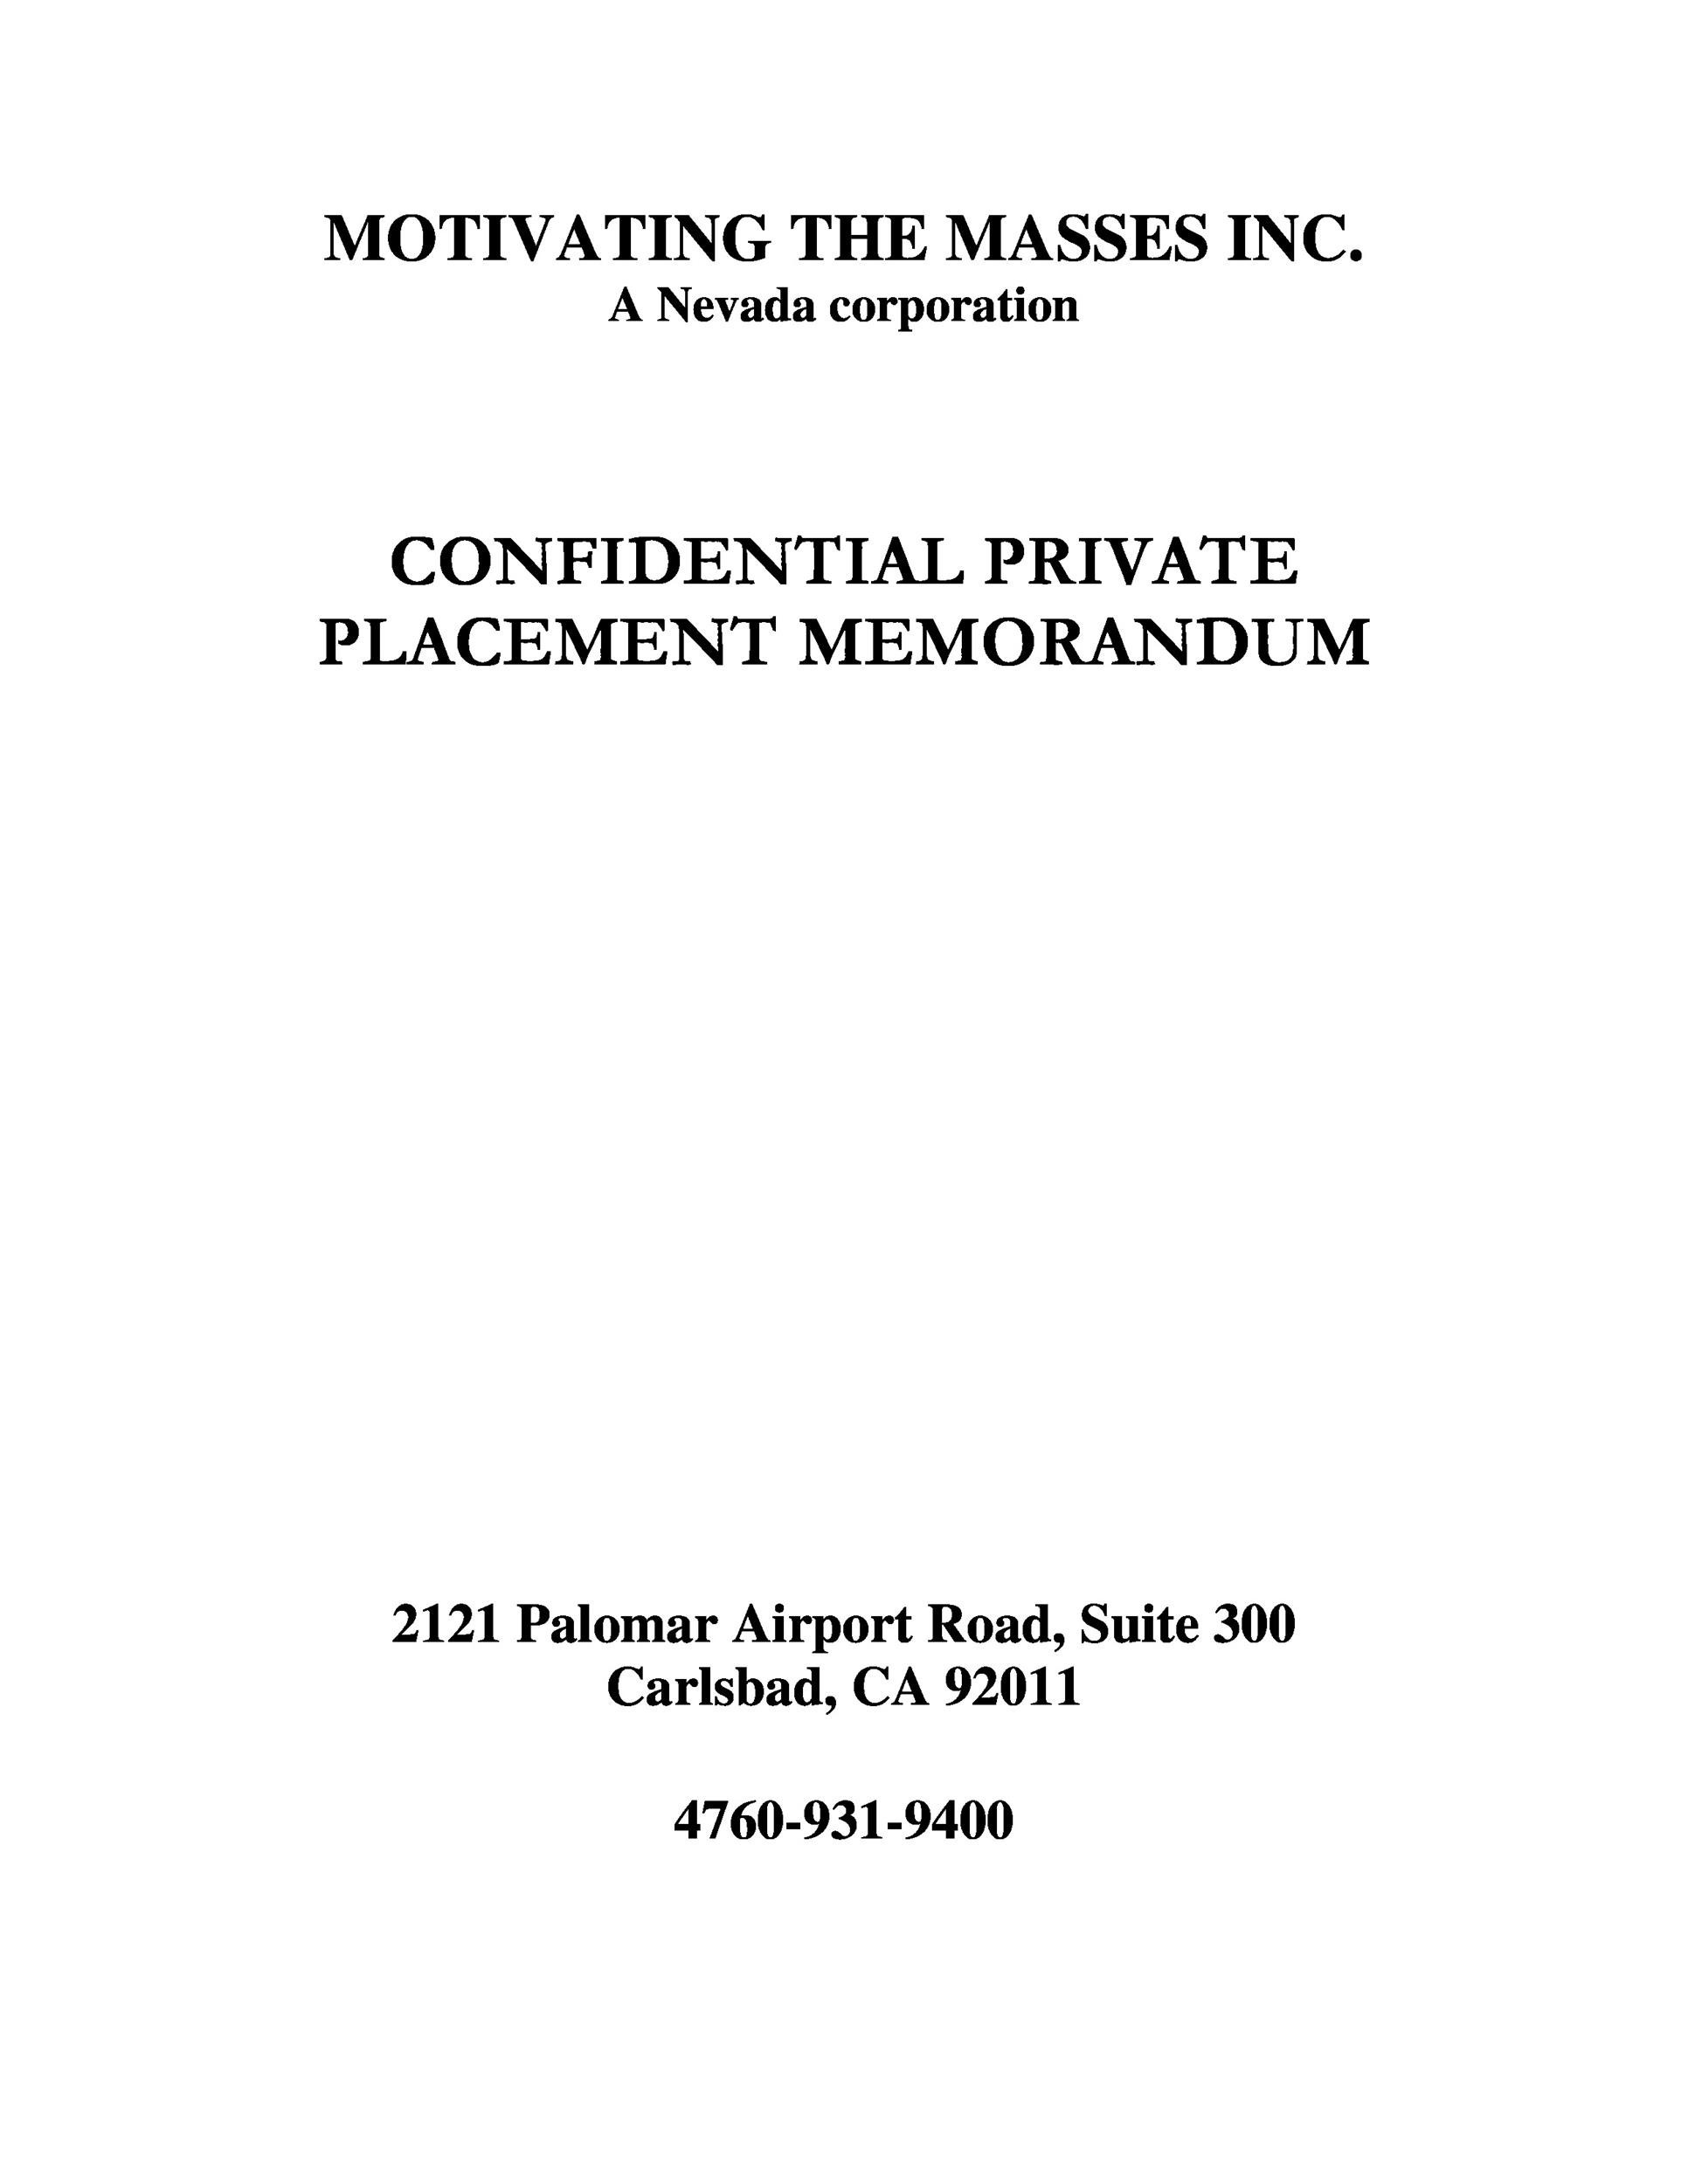 private placement memorandum template 33